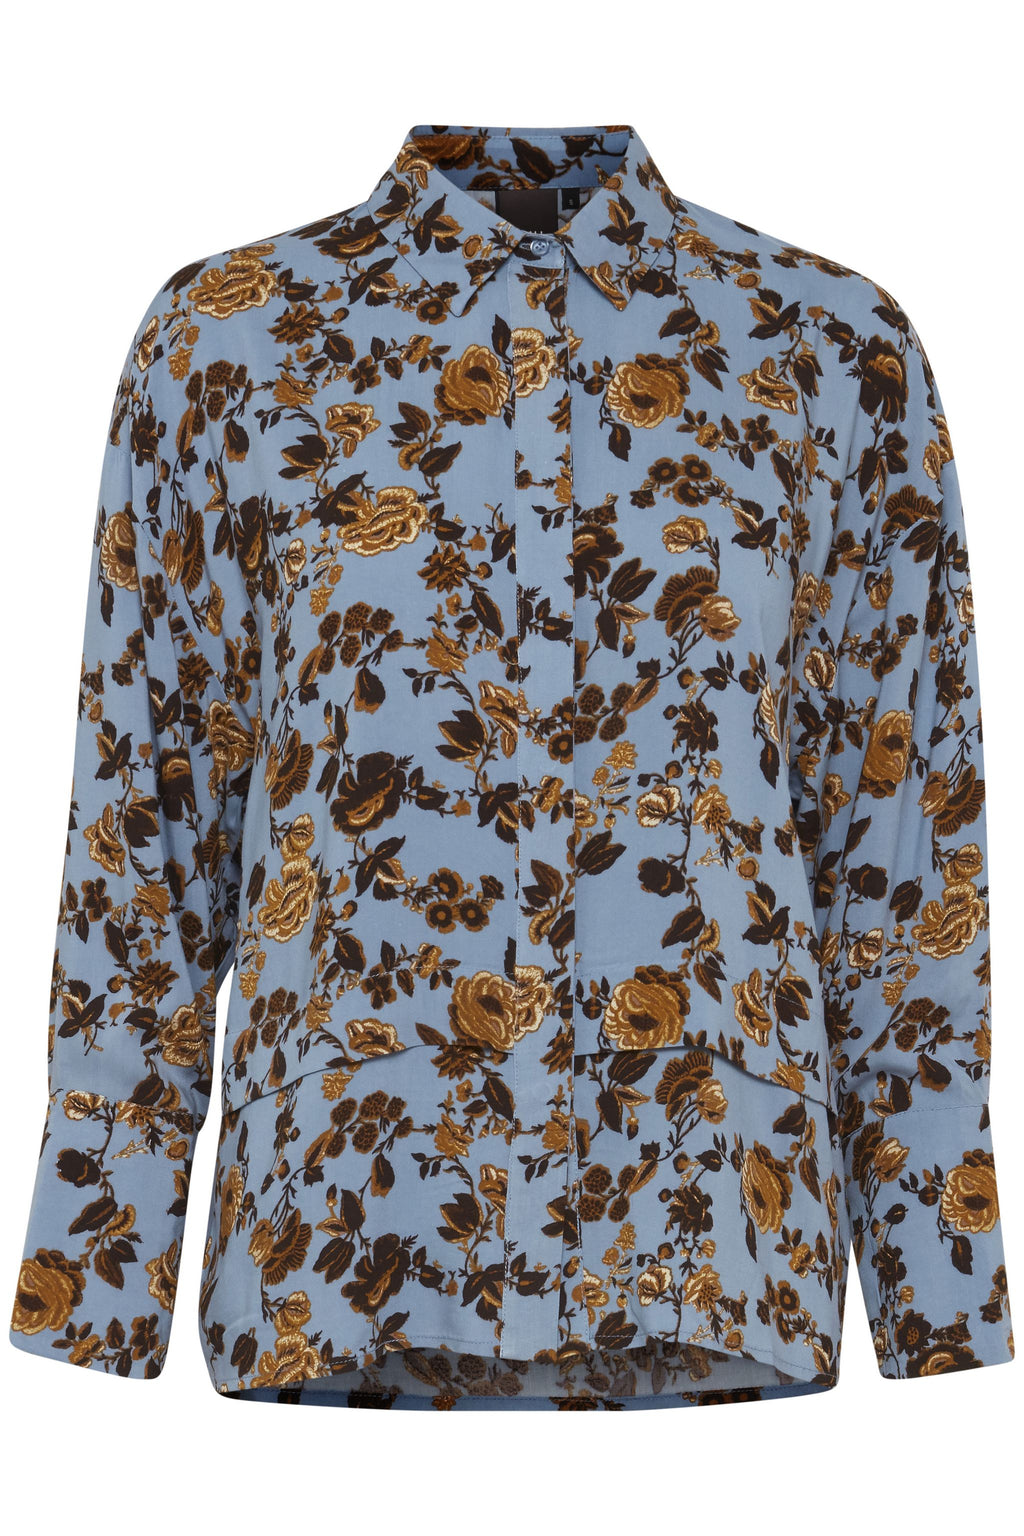 DURAVO floral shirt - blue shadow